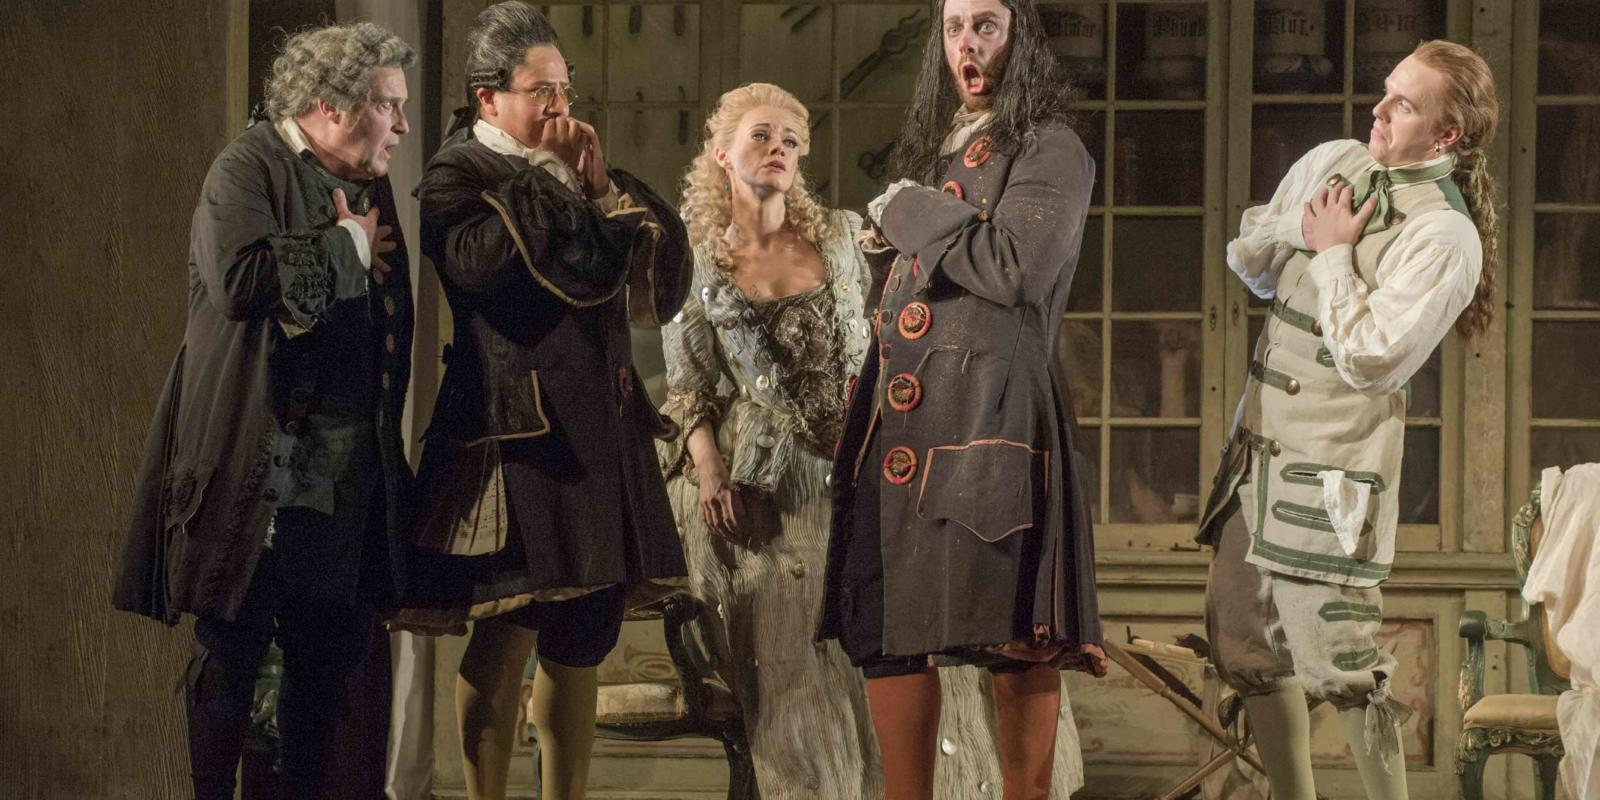 An image of Andrew Shore, Eleazar Rodriguez, Kathryn Rudge, Barnaby rea and Morgan Pearse in Jonathan Miller's 2015 16 production of Barber of Seville